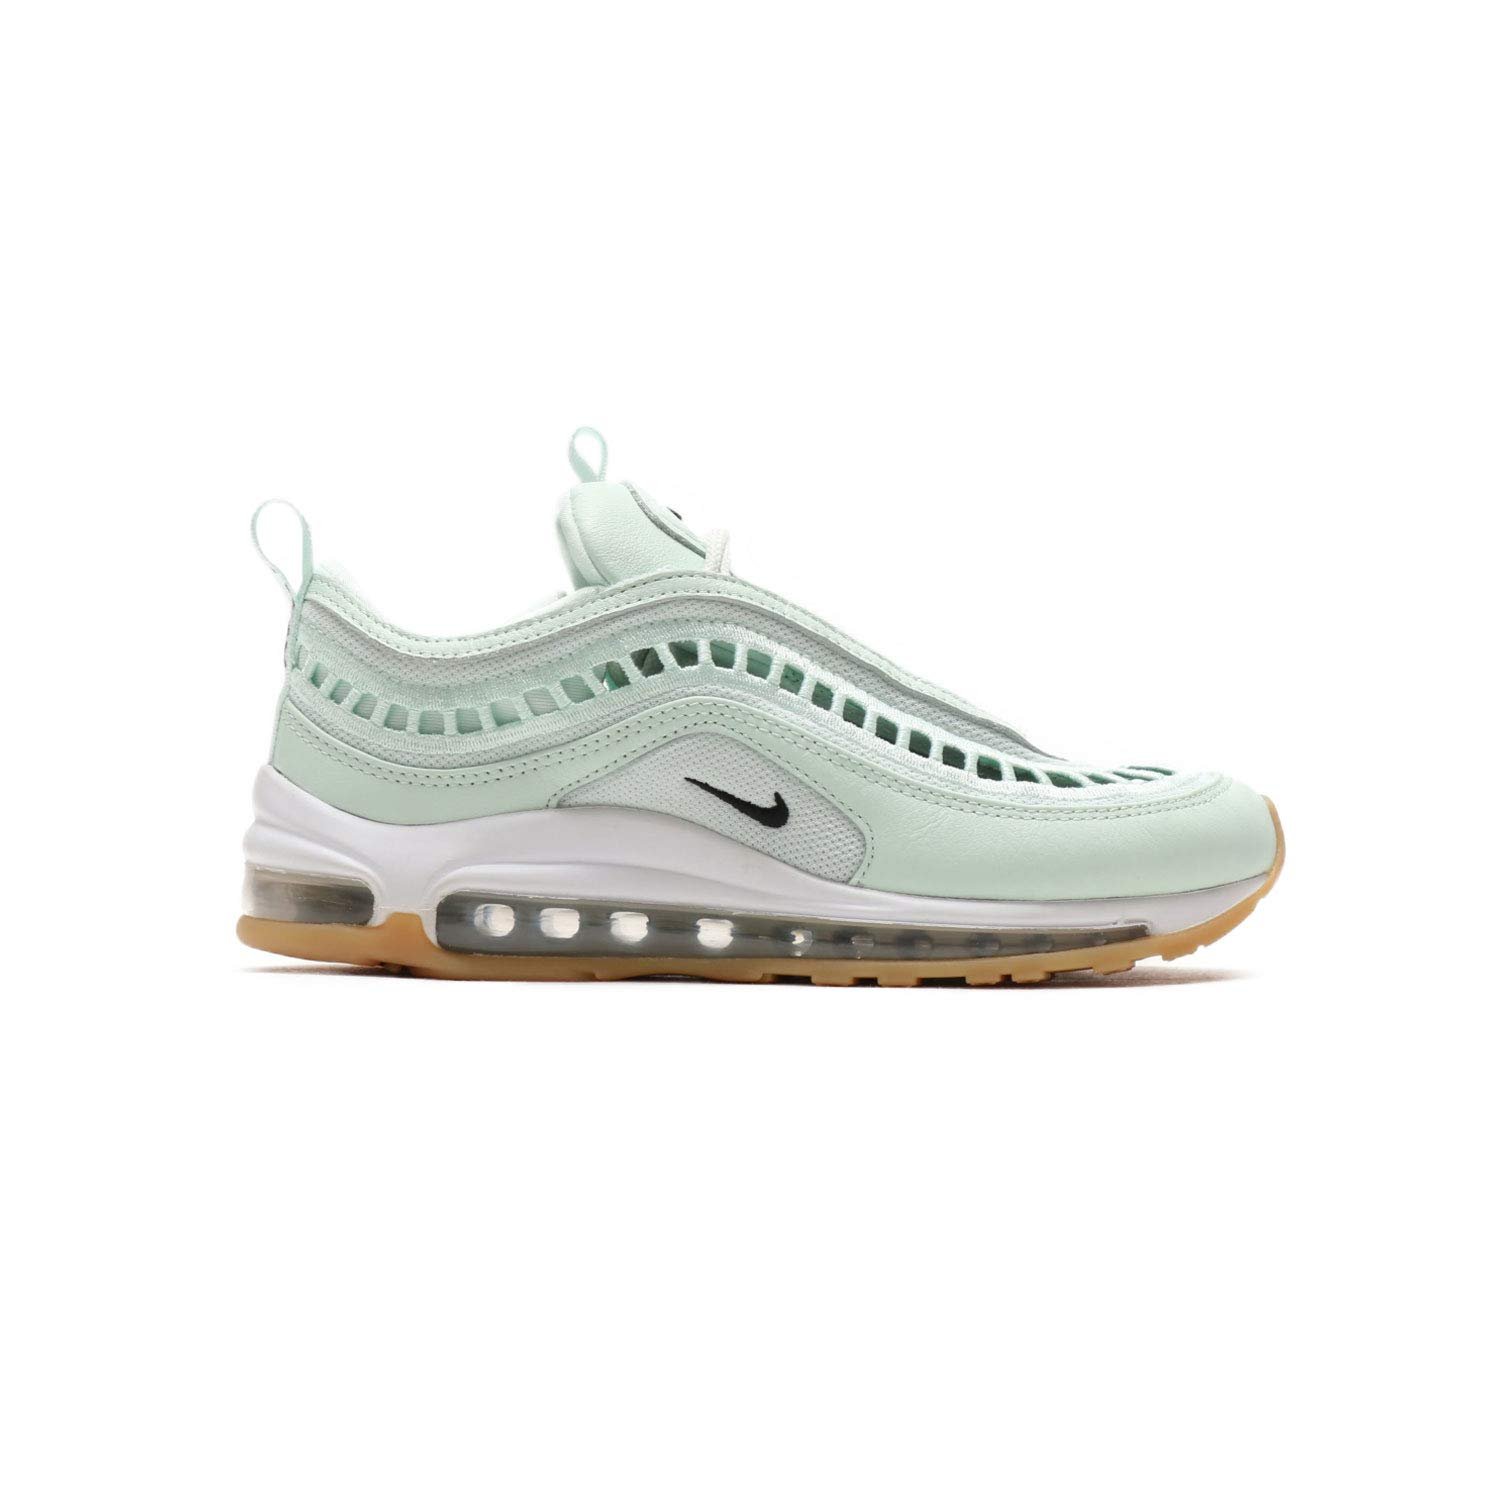 Nike Air Max 97 Ultra '17 SI Women's Lifestyle Shoes AO2326 600